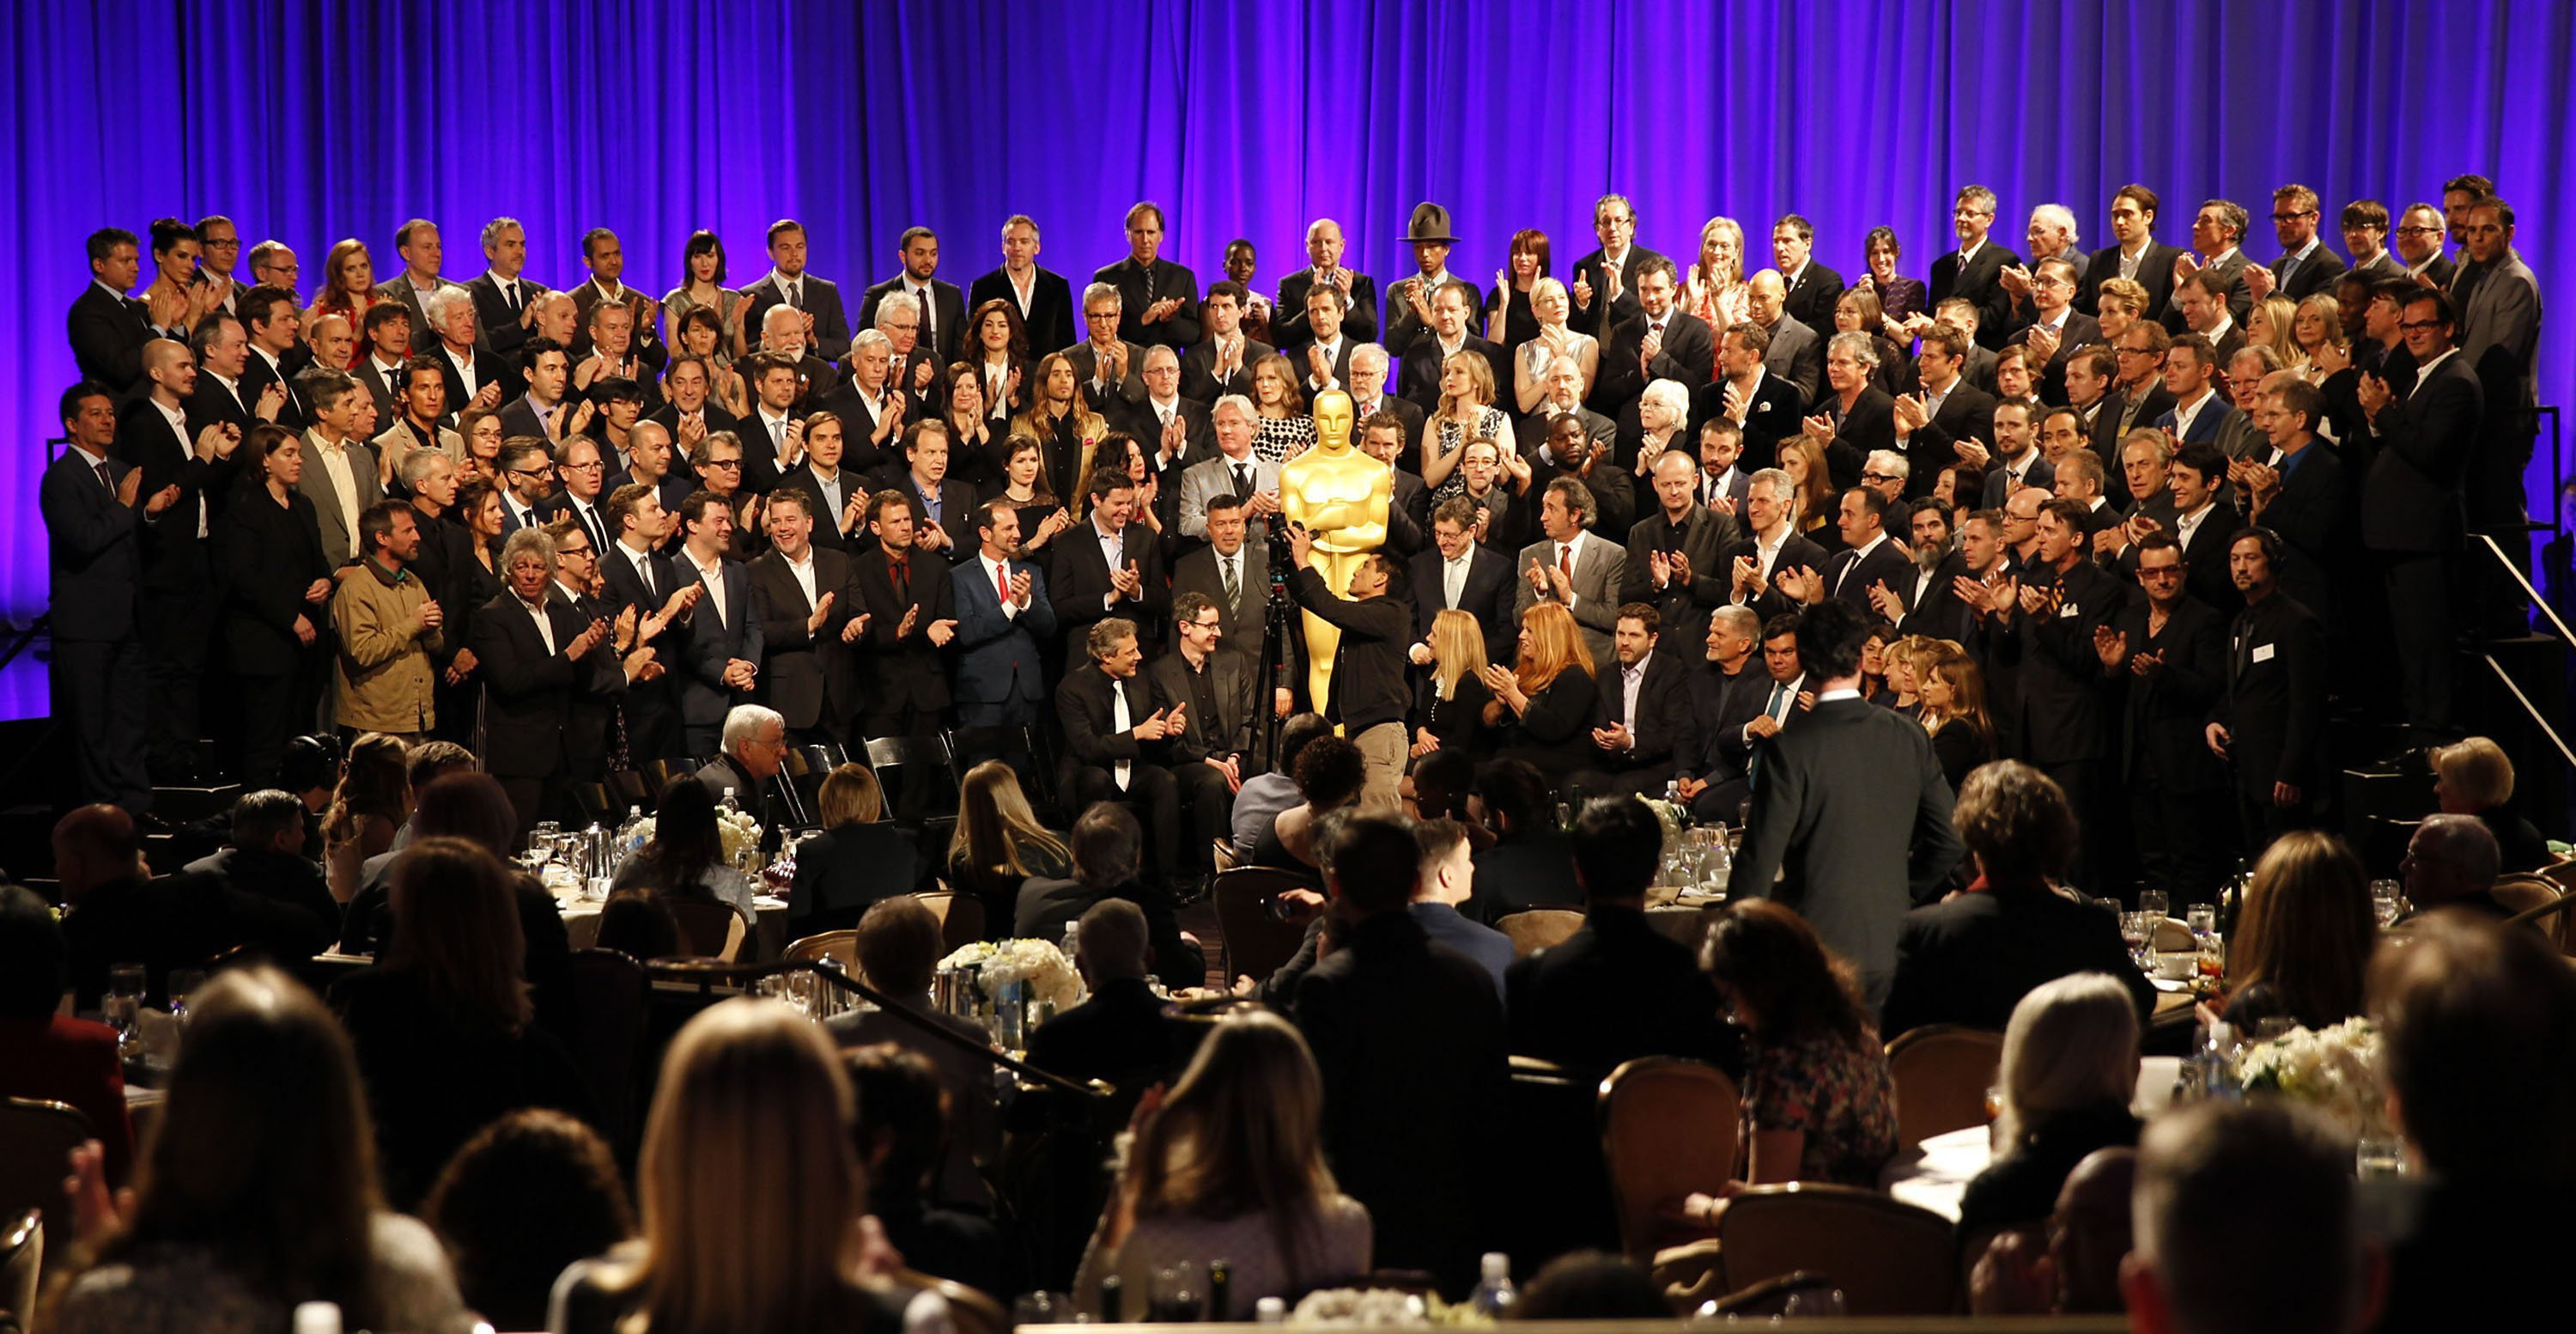 The 2014 class portrait at the 86th Annual Oscar Nominees Luncheon.